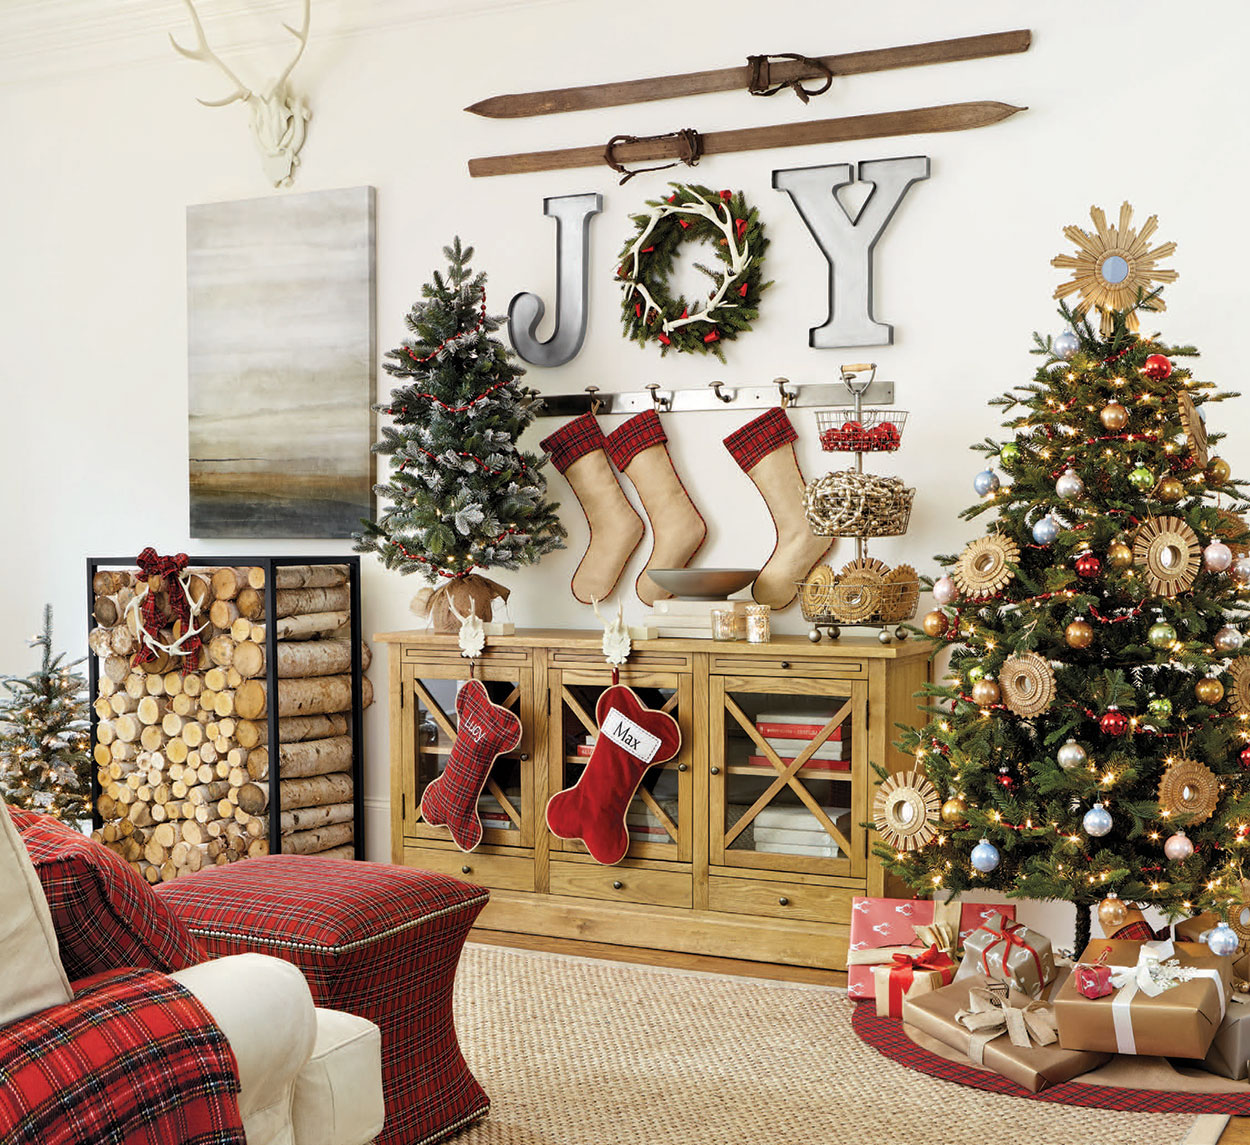 Holiday Home Design Ideas: Rustic Christmas Decorating Ideas